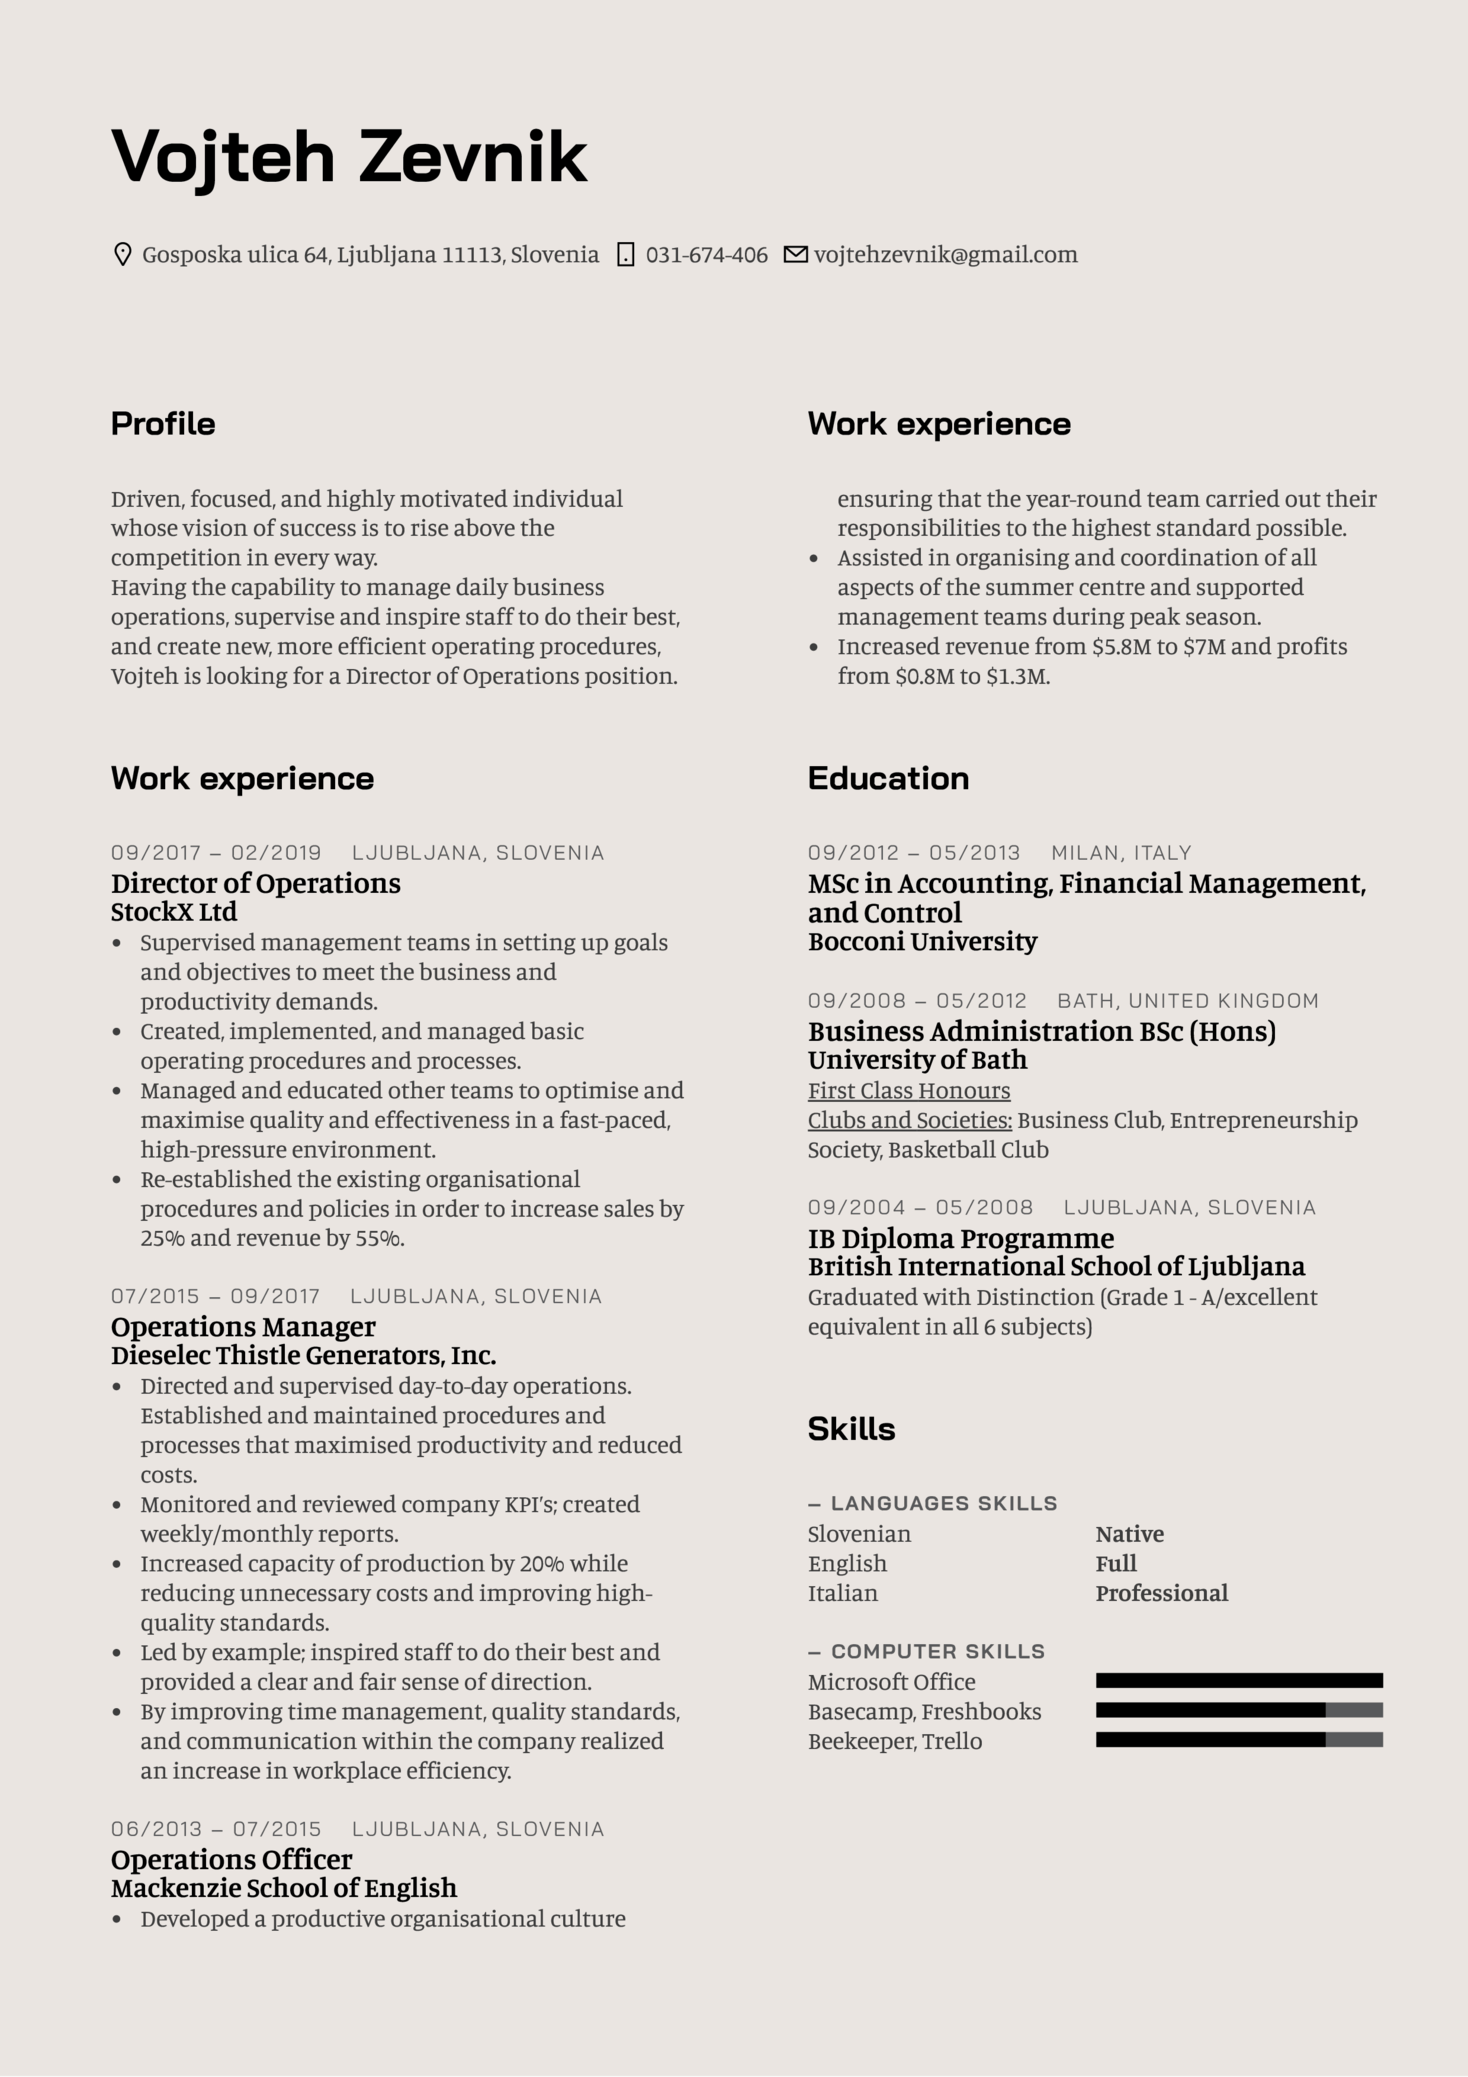 Director of Operations Resume Template (Part 1)